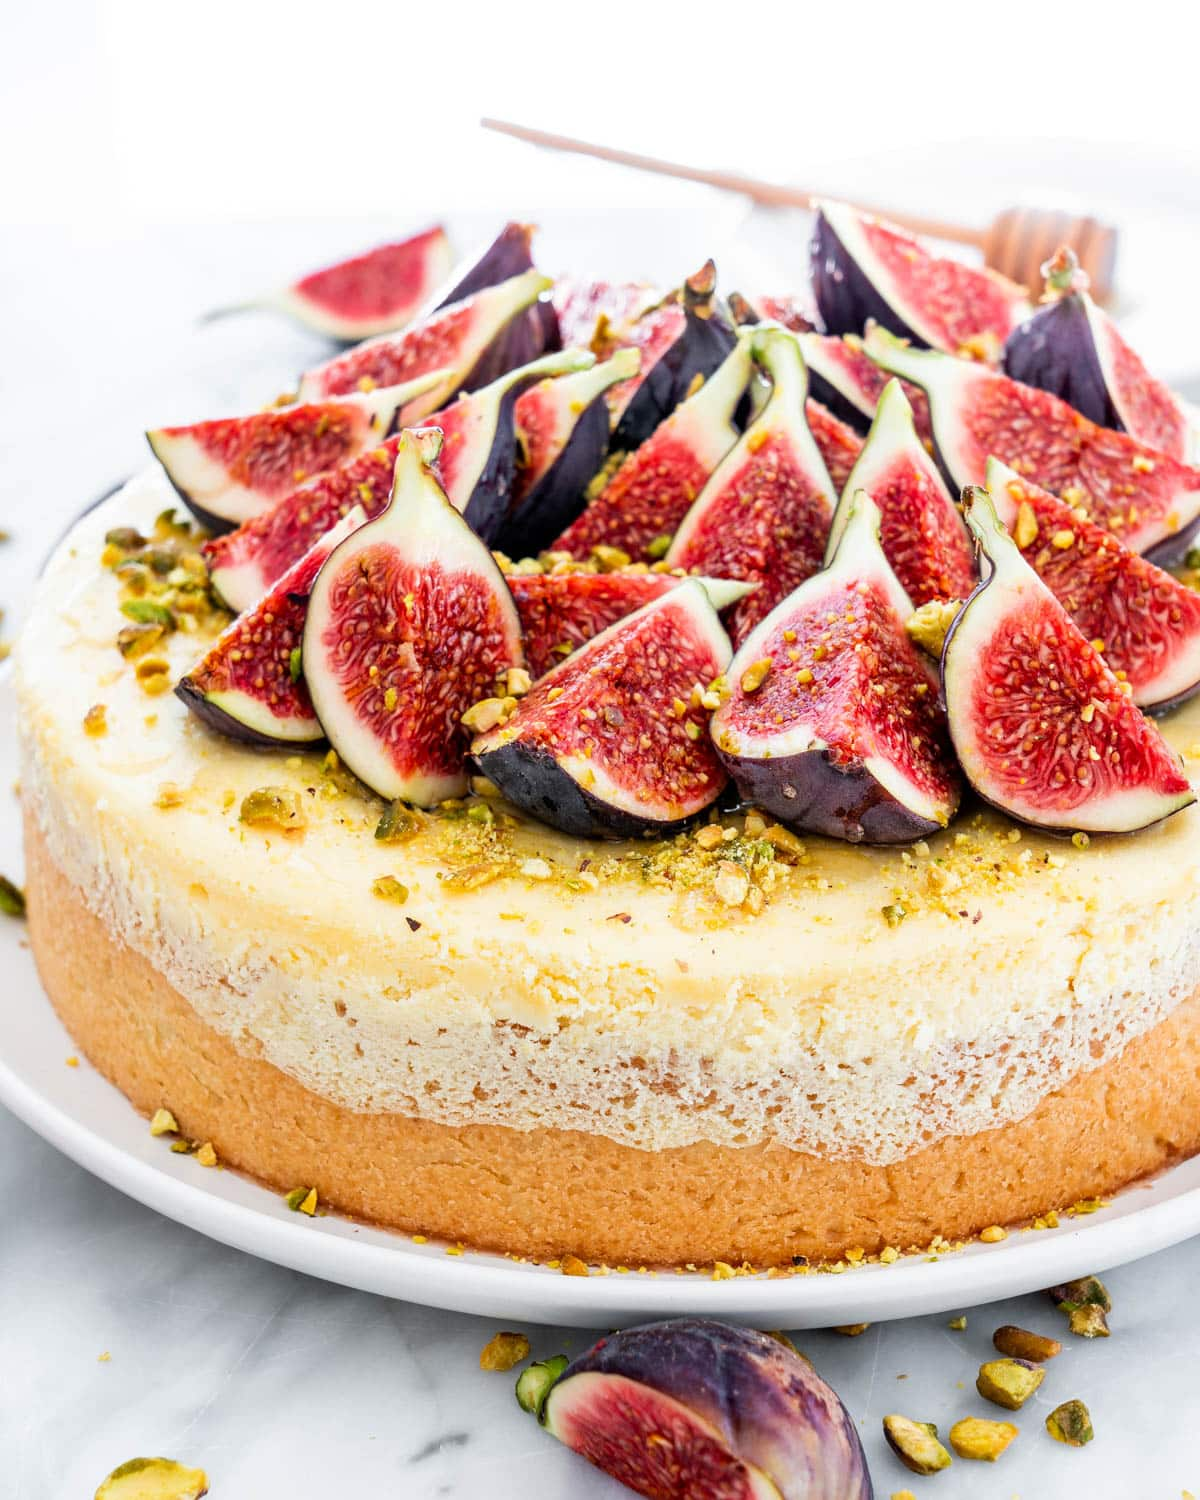 sideview of a goat cheese cheesecake topped with figs